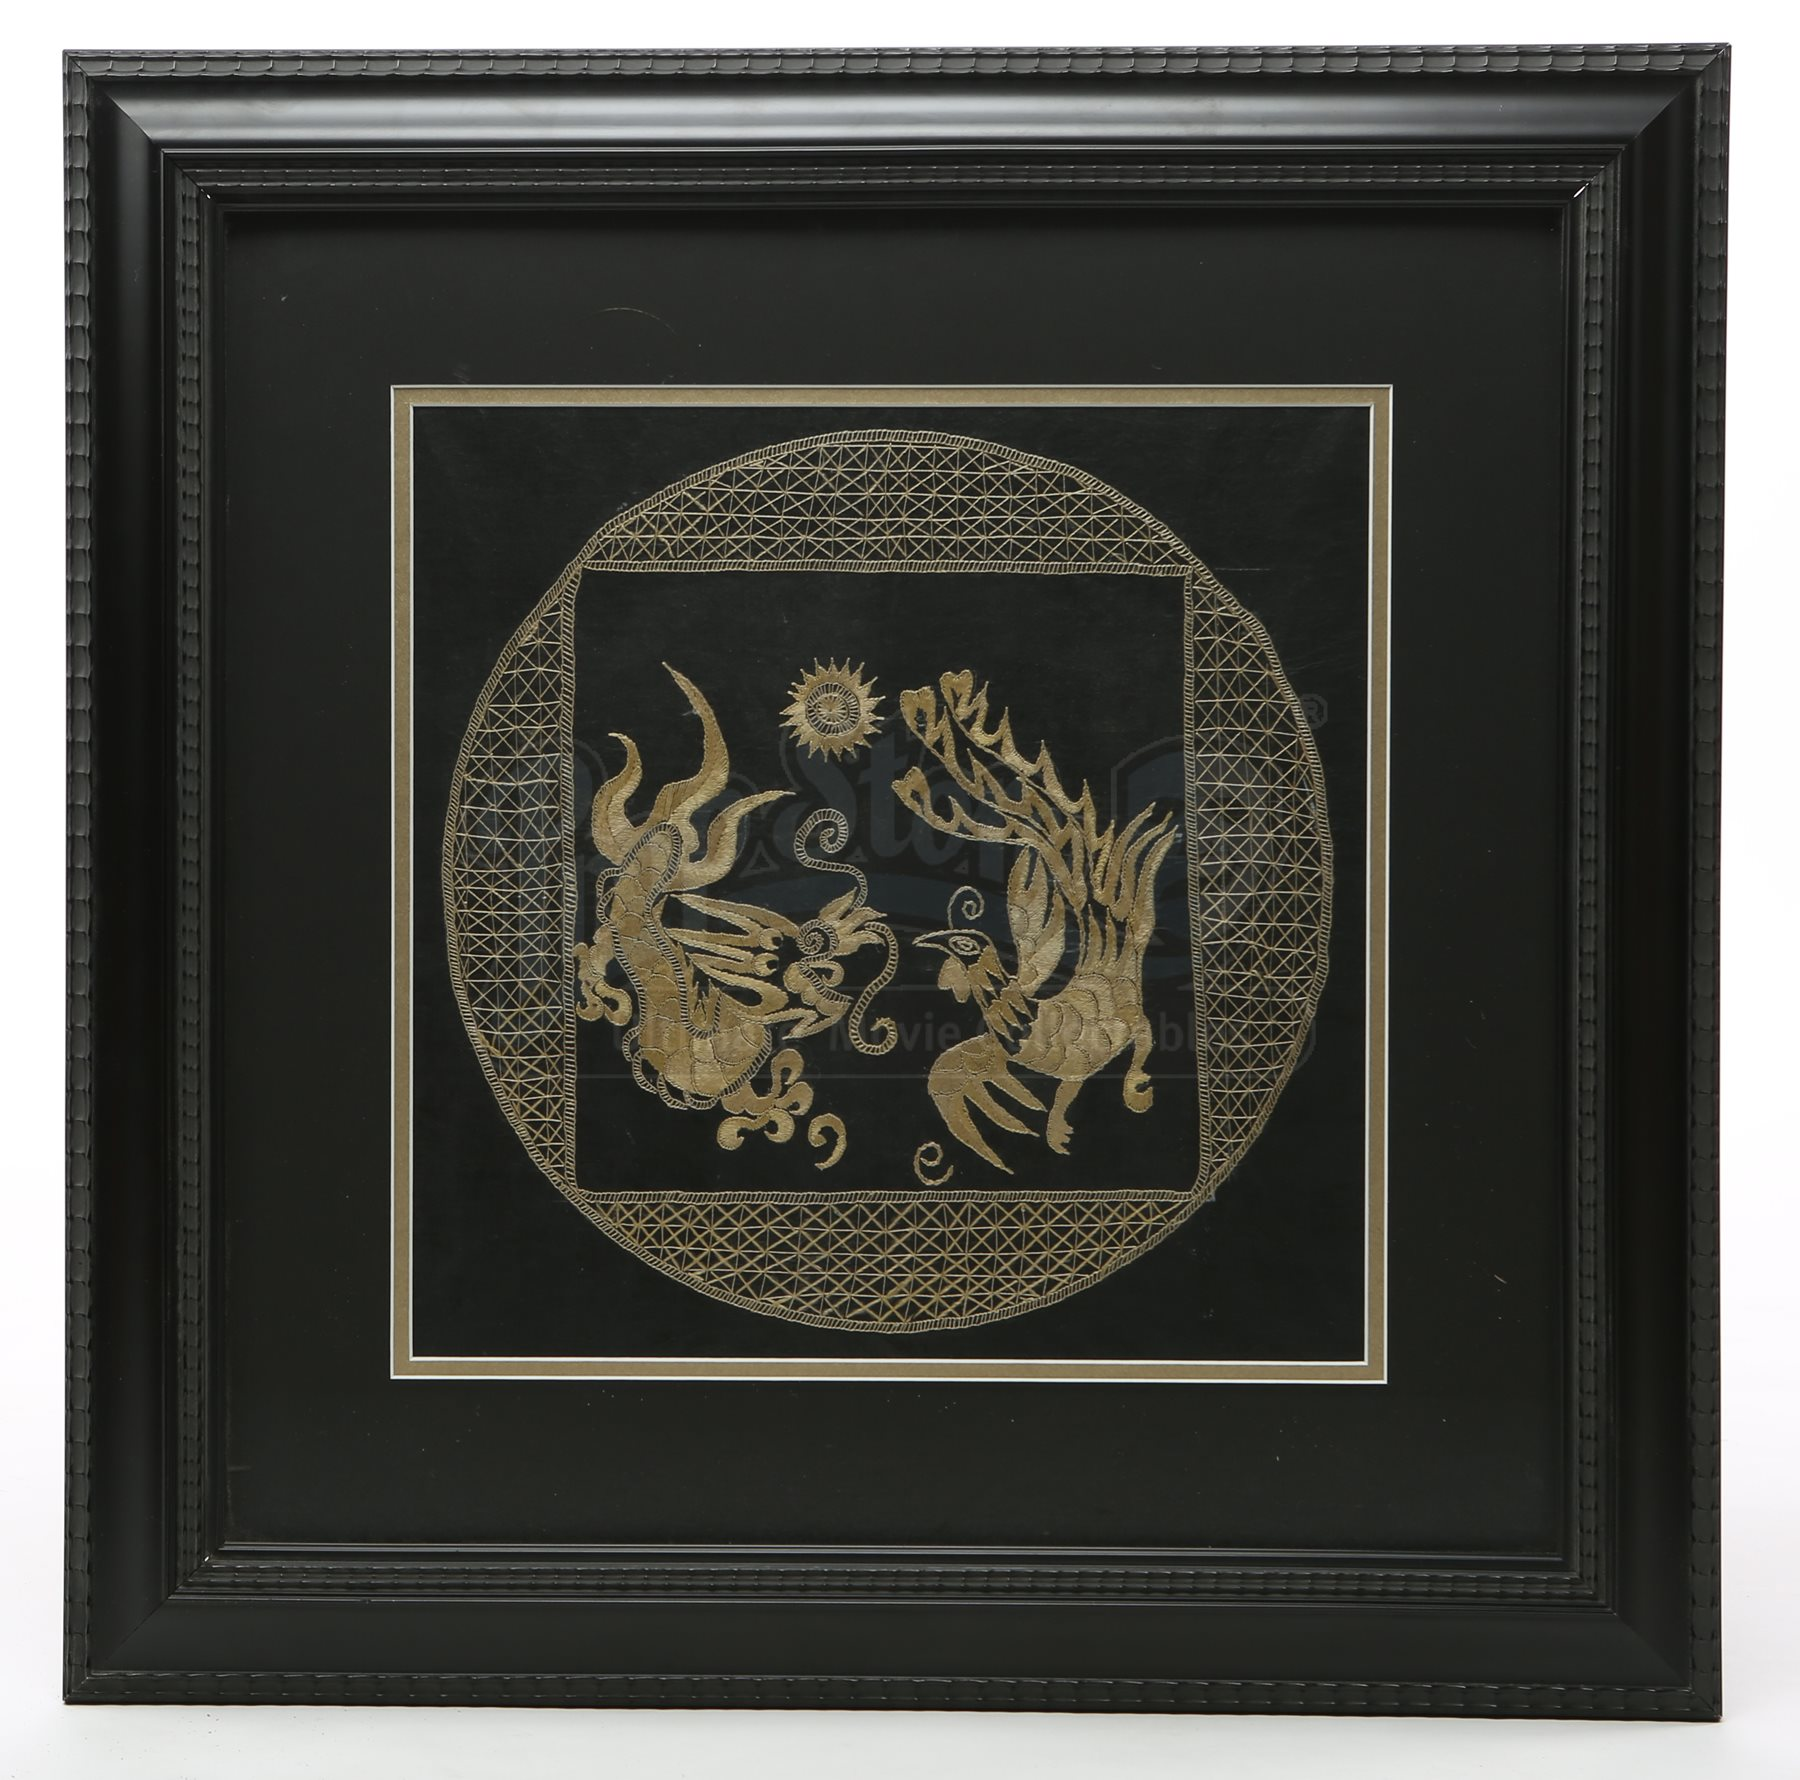 Cullen house framed dragon embroidery current price 900 for Twilight house price